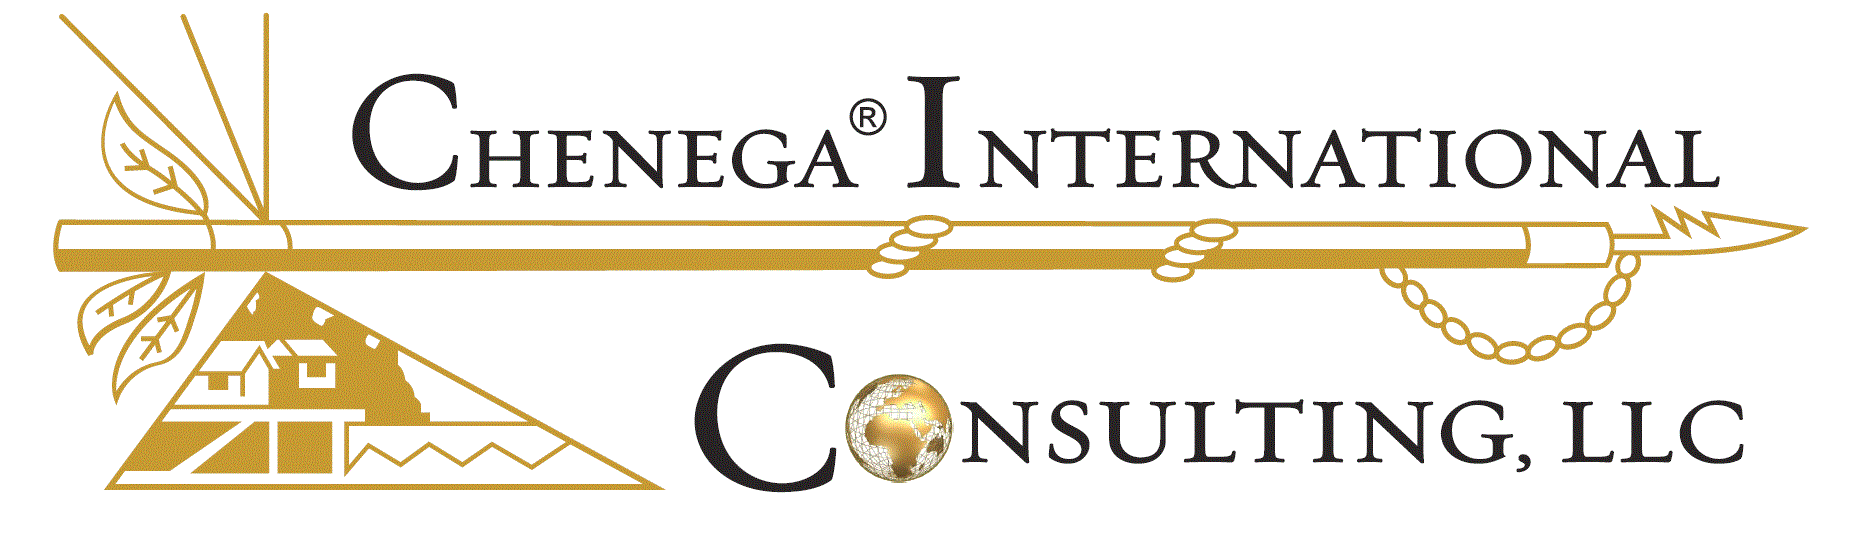 Chenega International Consulting LLC